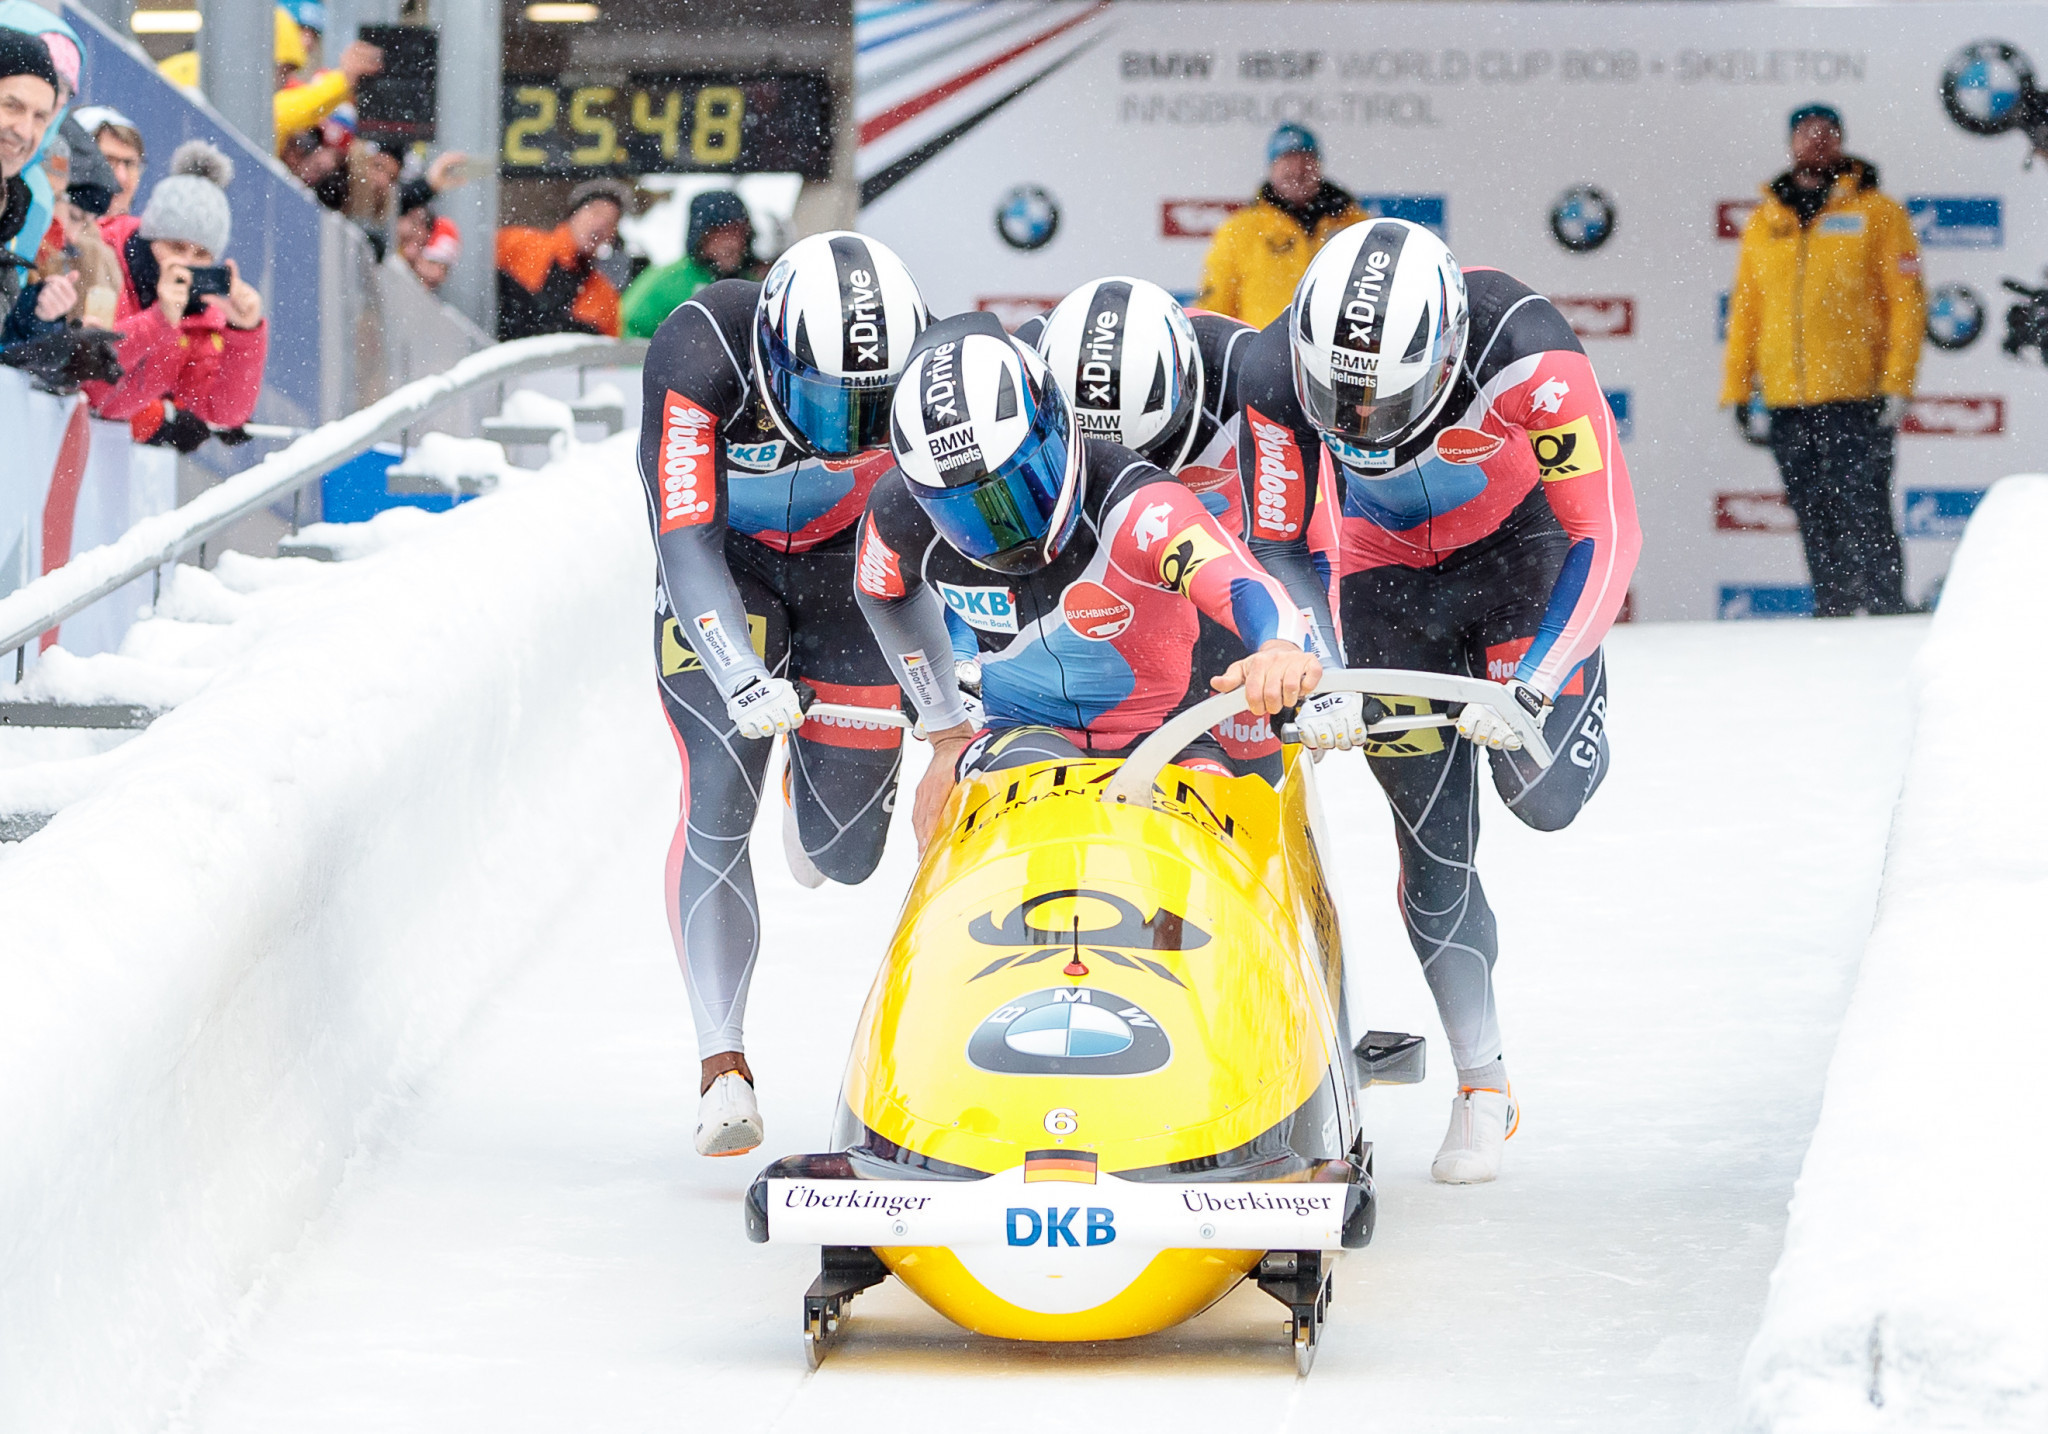 Lochner wins four-man title at IBSF World Cup and defends European crown